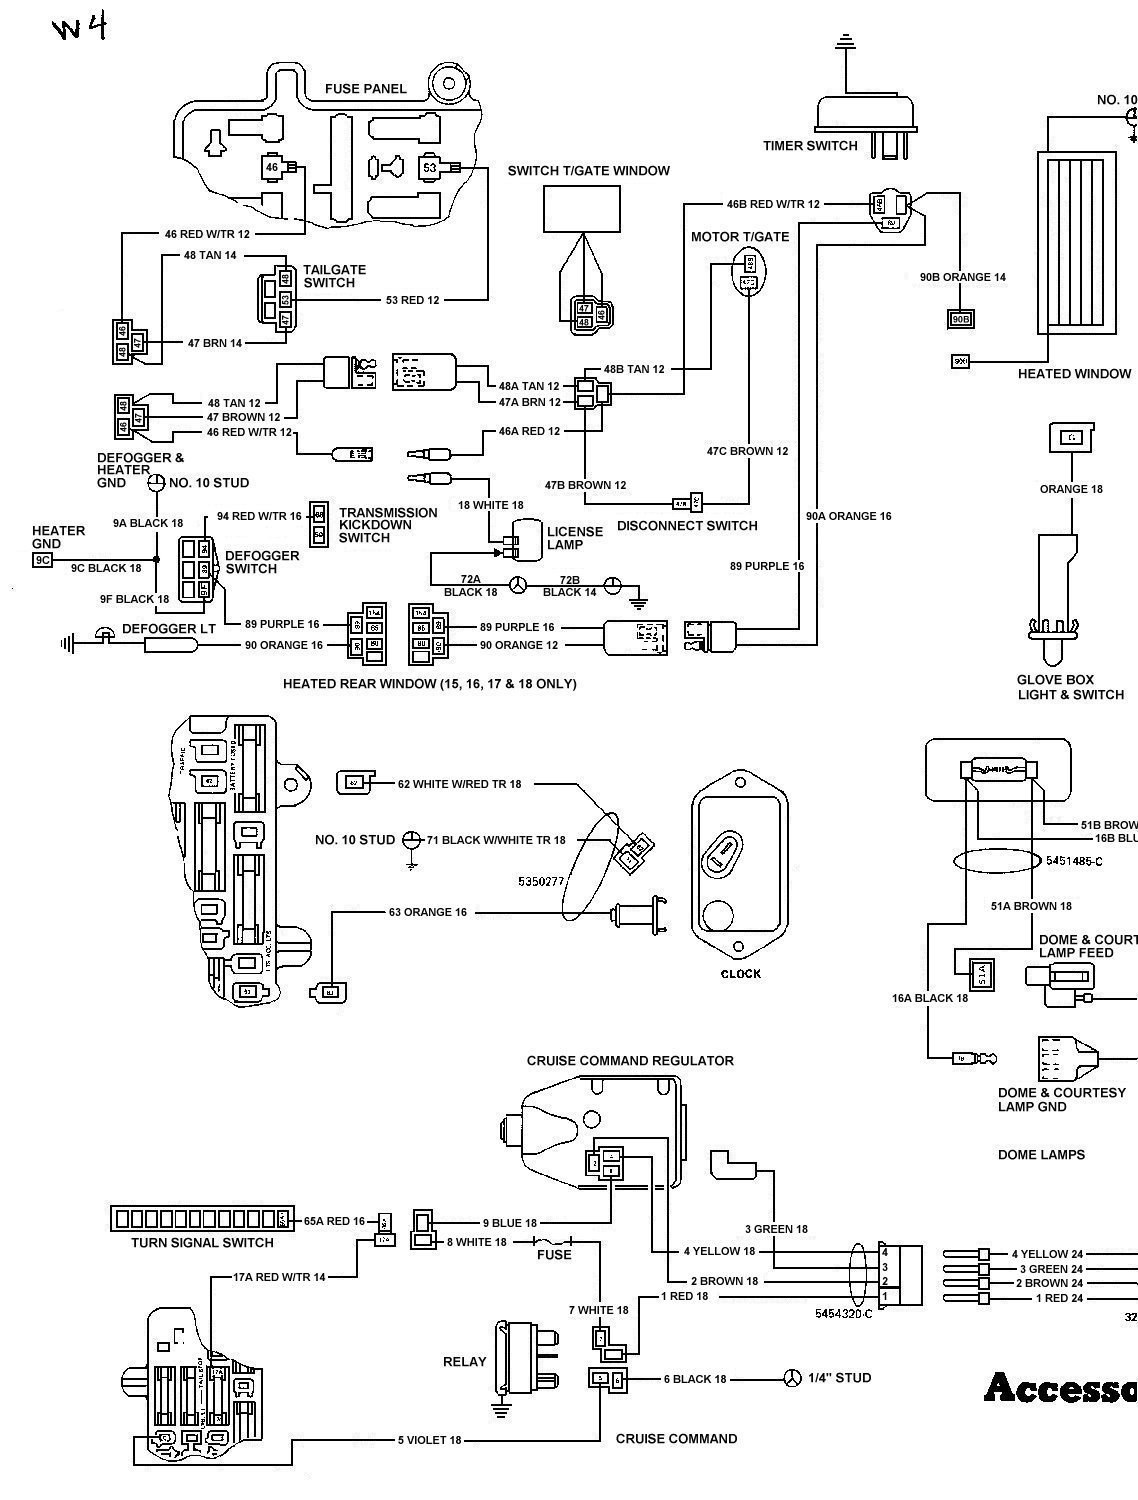 Cj7 Fuse Box Diagram 1985 Jeep Trusted Wiring 25 Images 1980